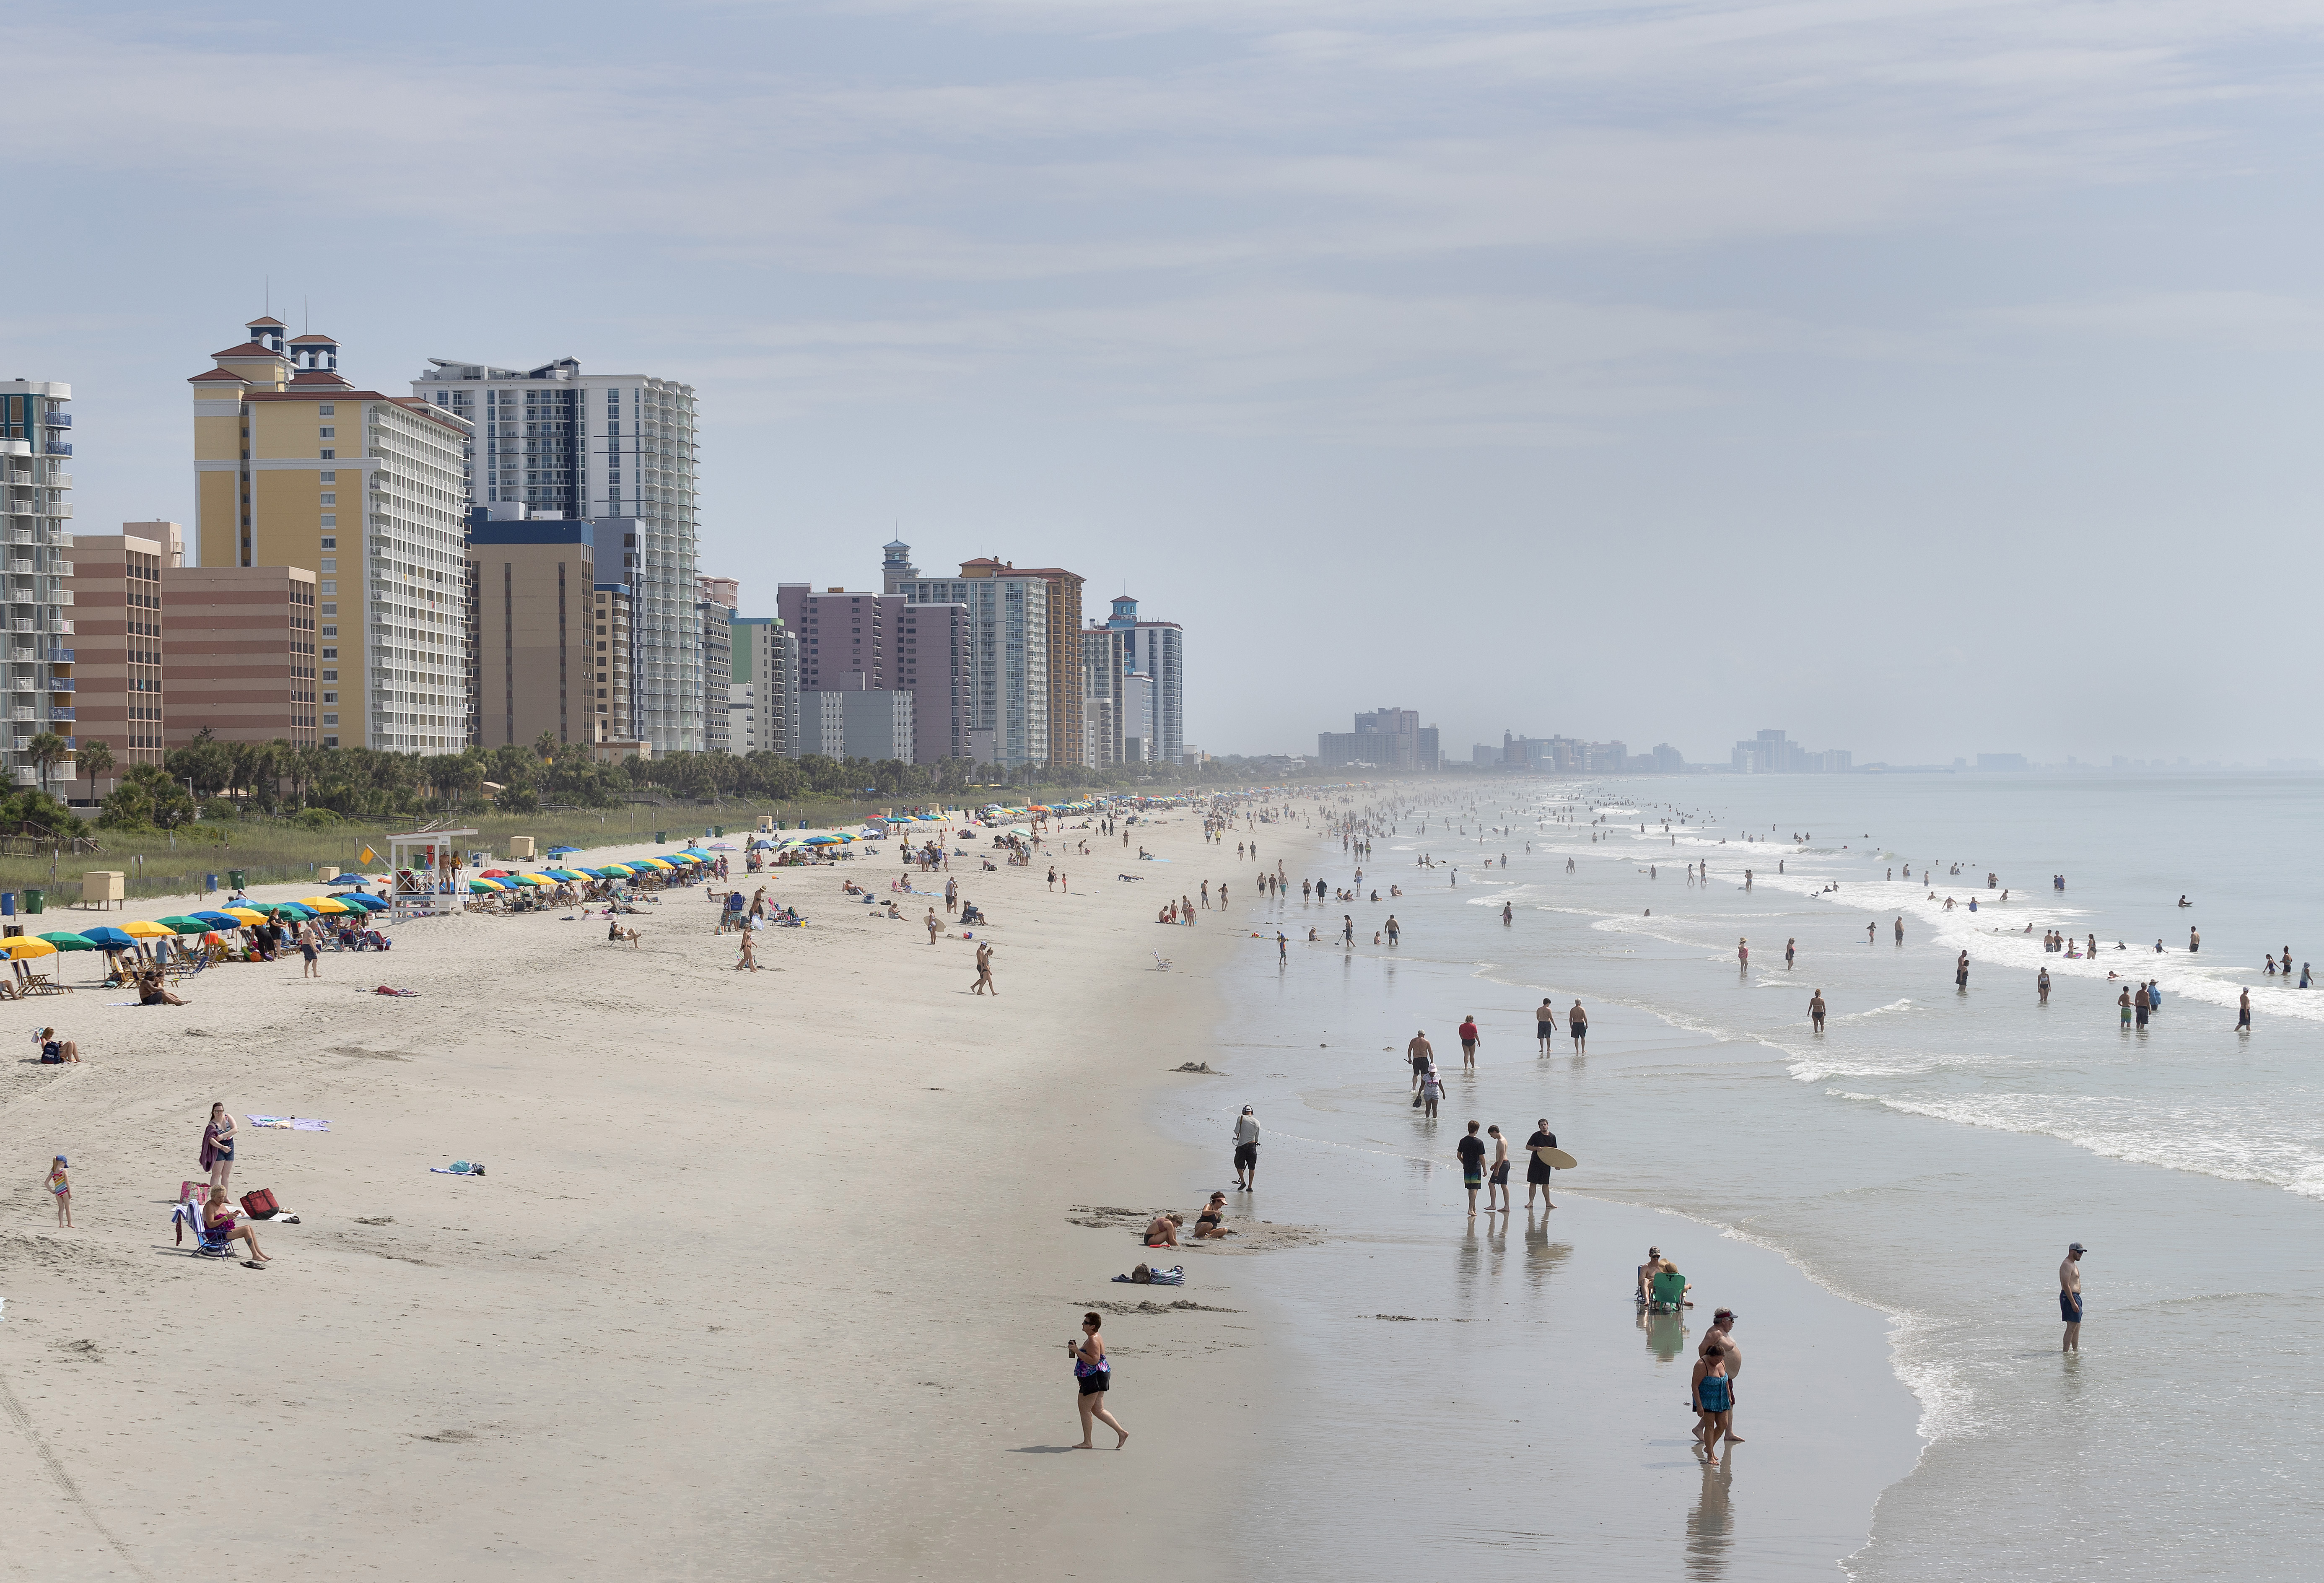 Crowds pack the beach in Myrtle Beach, S.C. MUST CREDIT: Photo for The Washington Post by Brett Lemmo